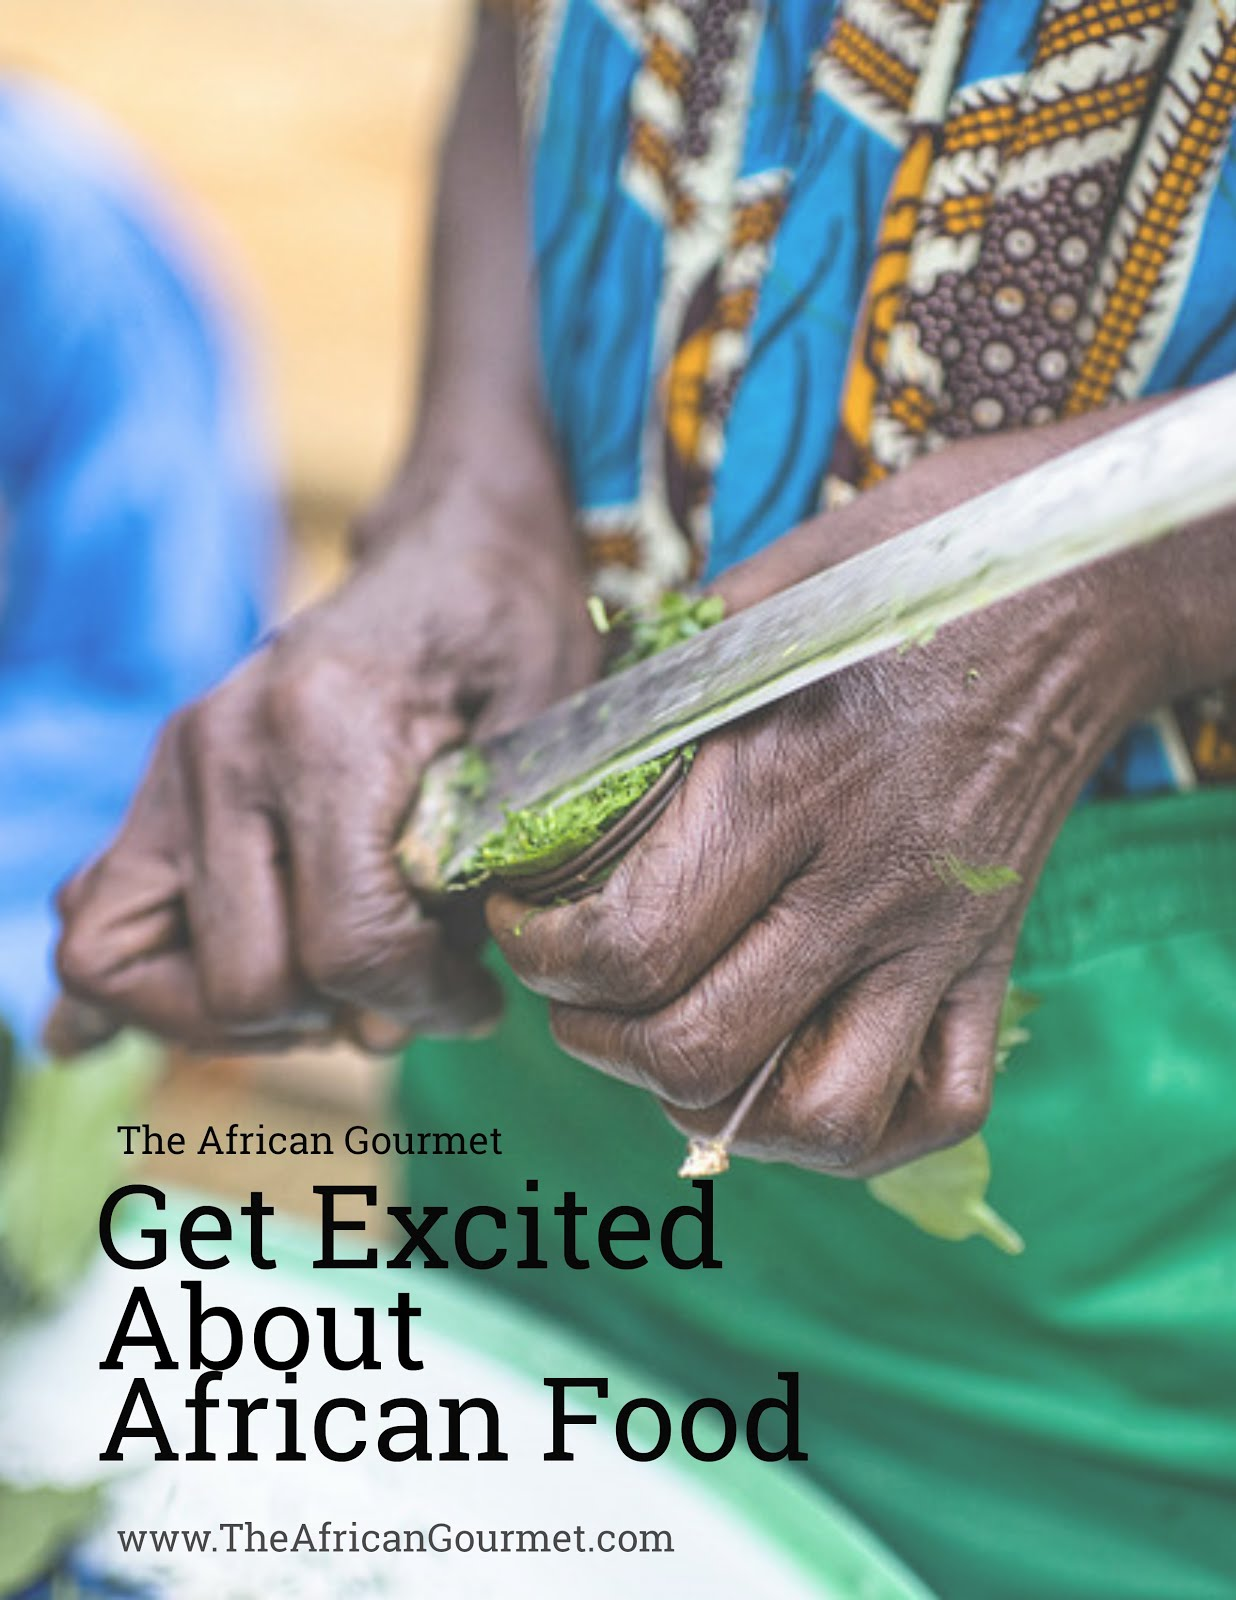 Get excited about cooking African food